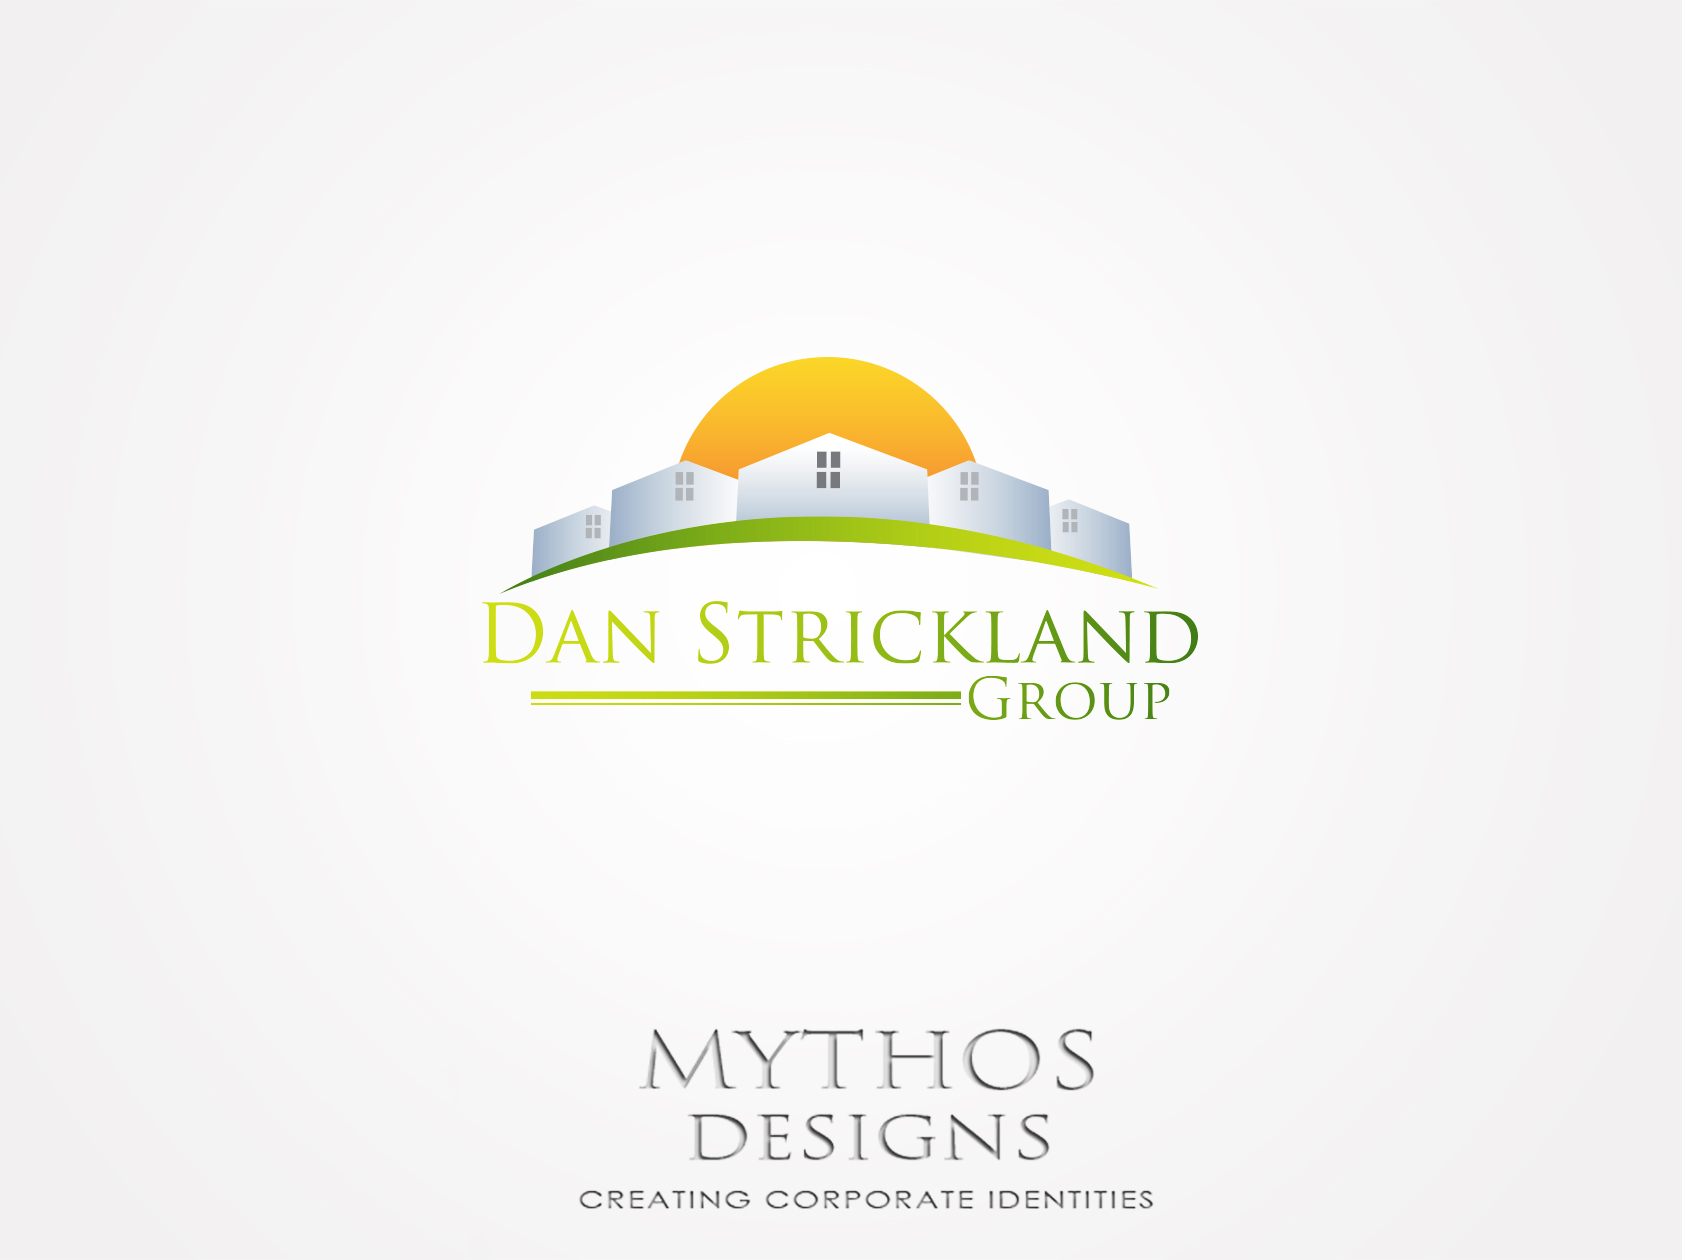 Logo Design by Mythos Designs - Entry No. 12 in the Logo Design Contest Creative Logo Design for The Dan Strickland Group.